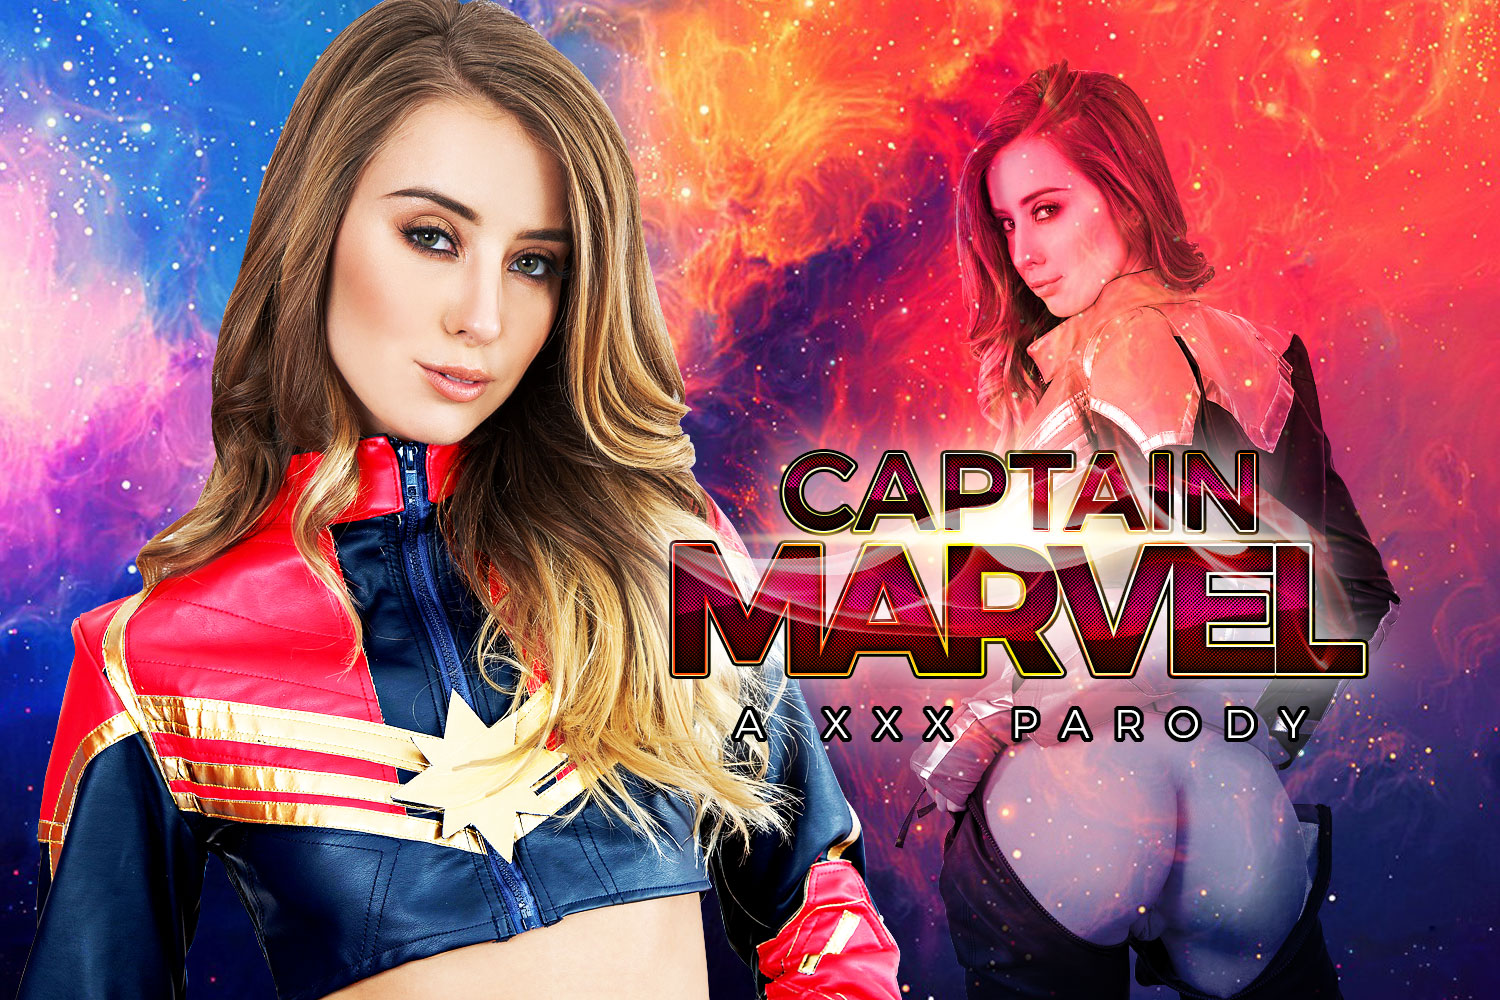 Captain Marvel A XXX Parody VR Porn Video